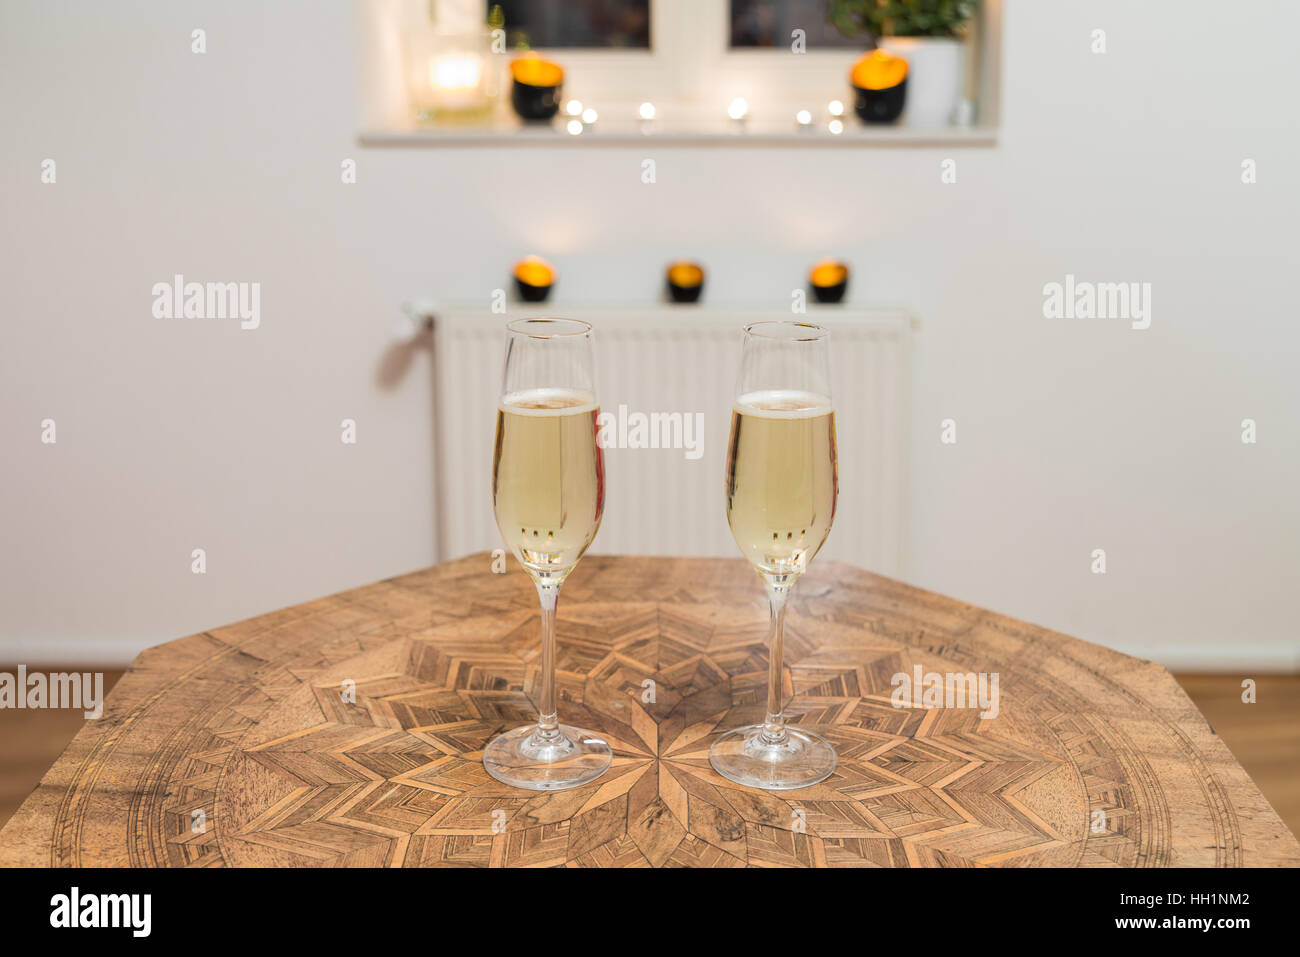 Two glasses filled with champagne on a antique table - Stock Image